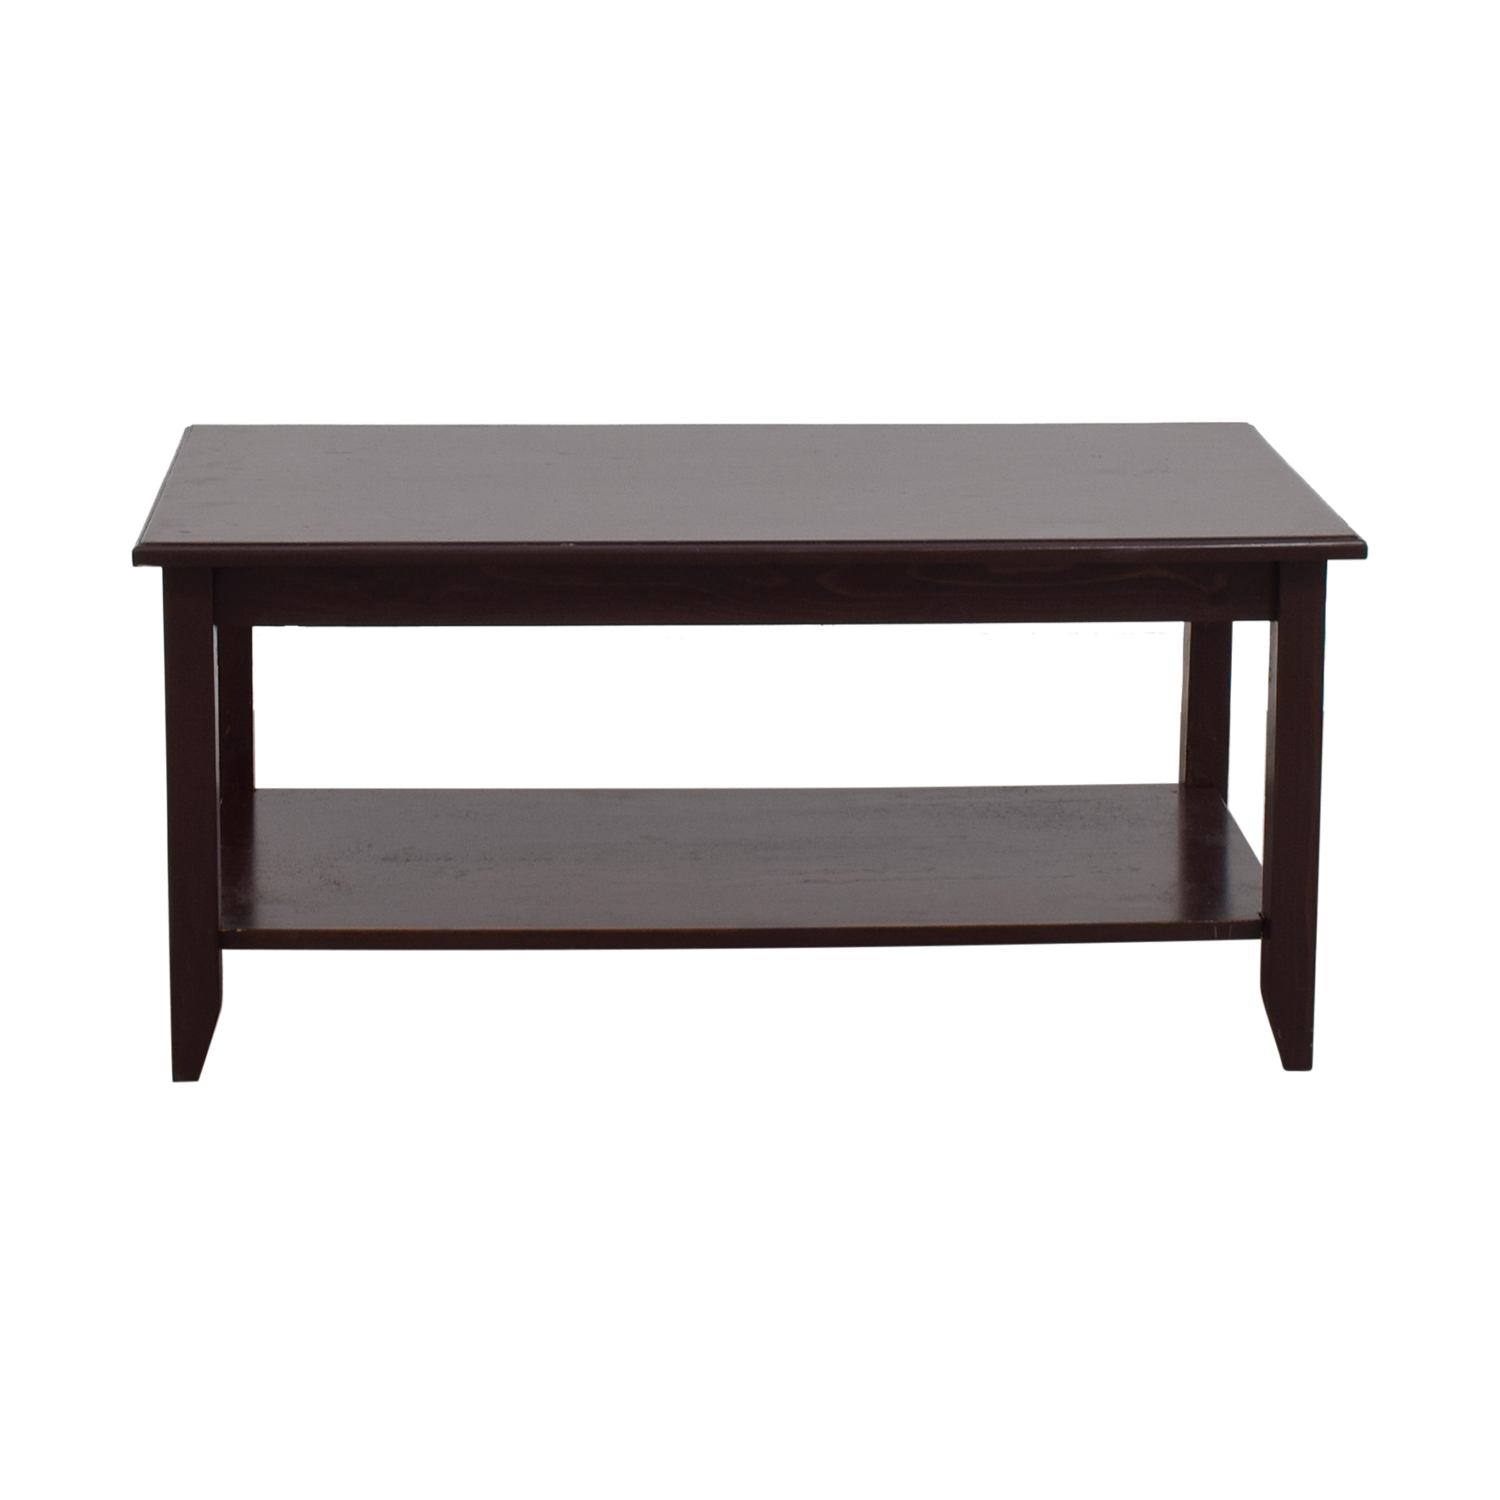 55 OFF Gothic Furniture Gothic Furniture Coffee Table with Shelf